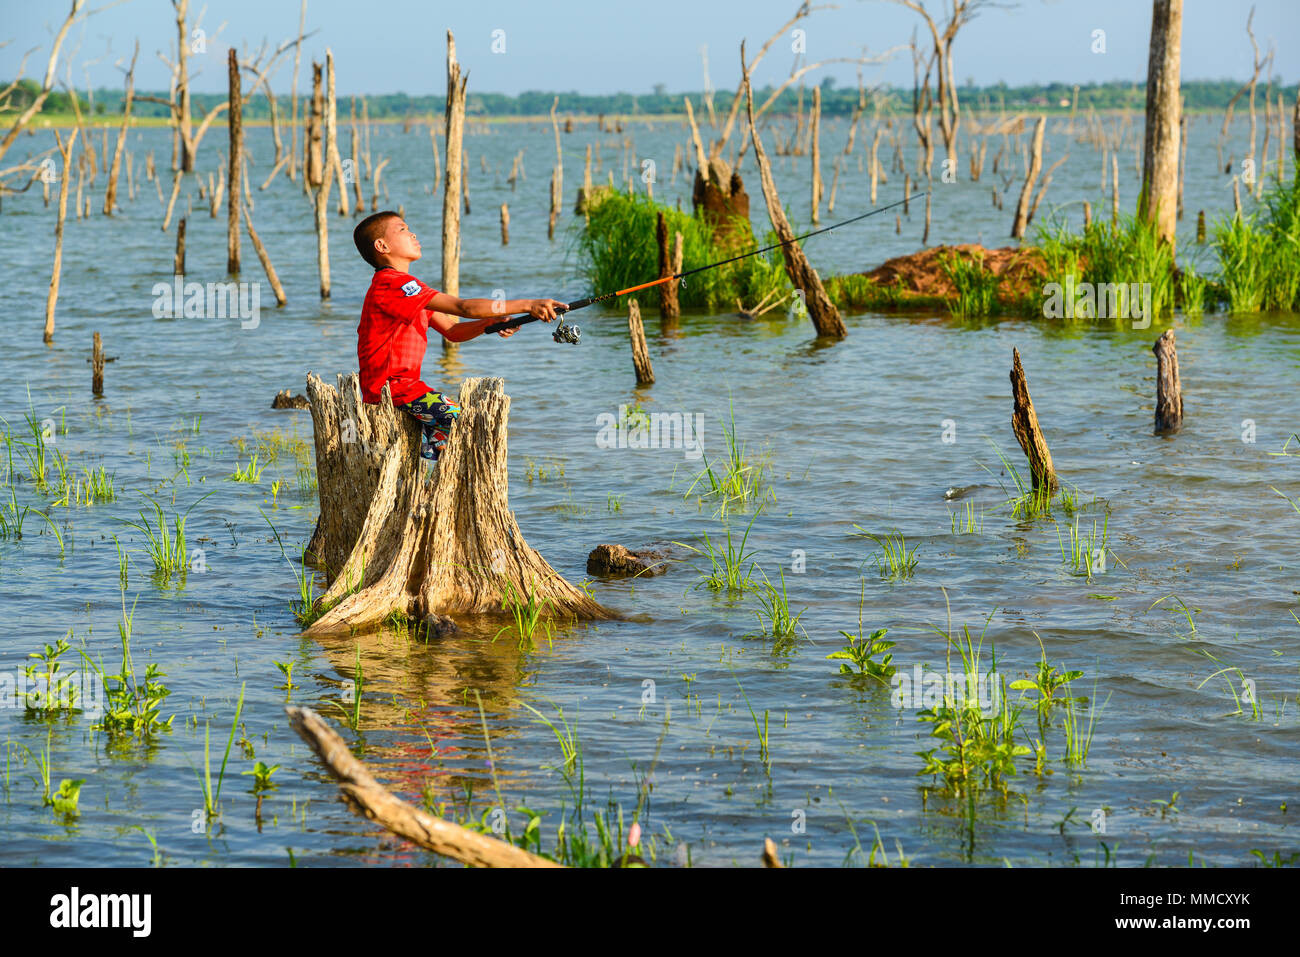 Chachoengsao, Thailand - December 8, 2011, Fisherboy fishing by using fishing pole to fish in rural swamp in Chachoengsao, Thailand - Stock Image